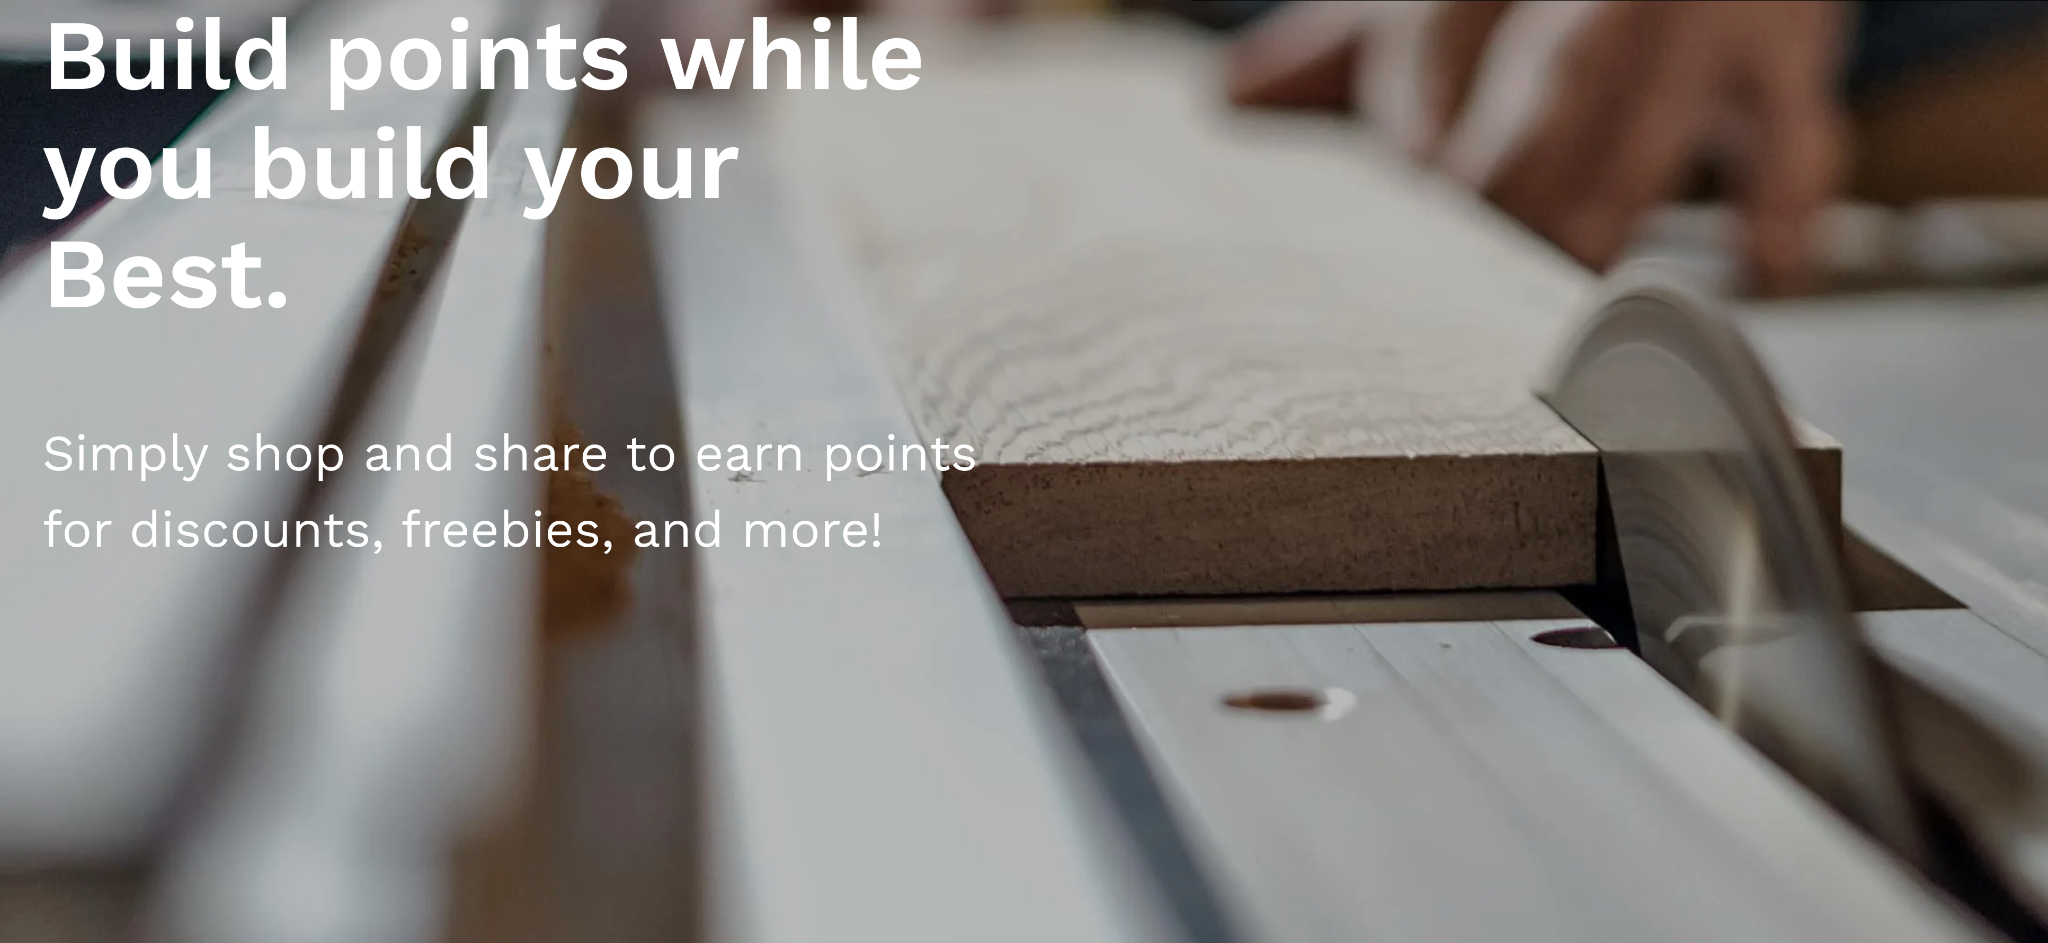 How to Save Money with Workbench Nation Rewards